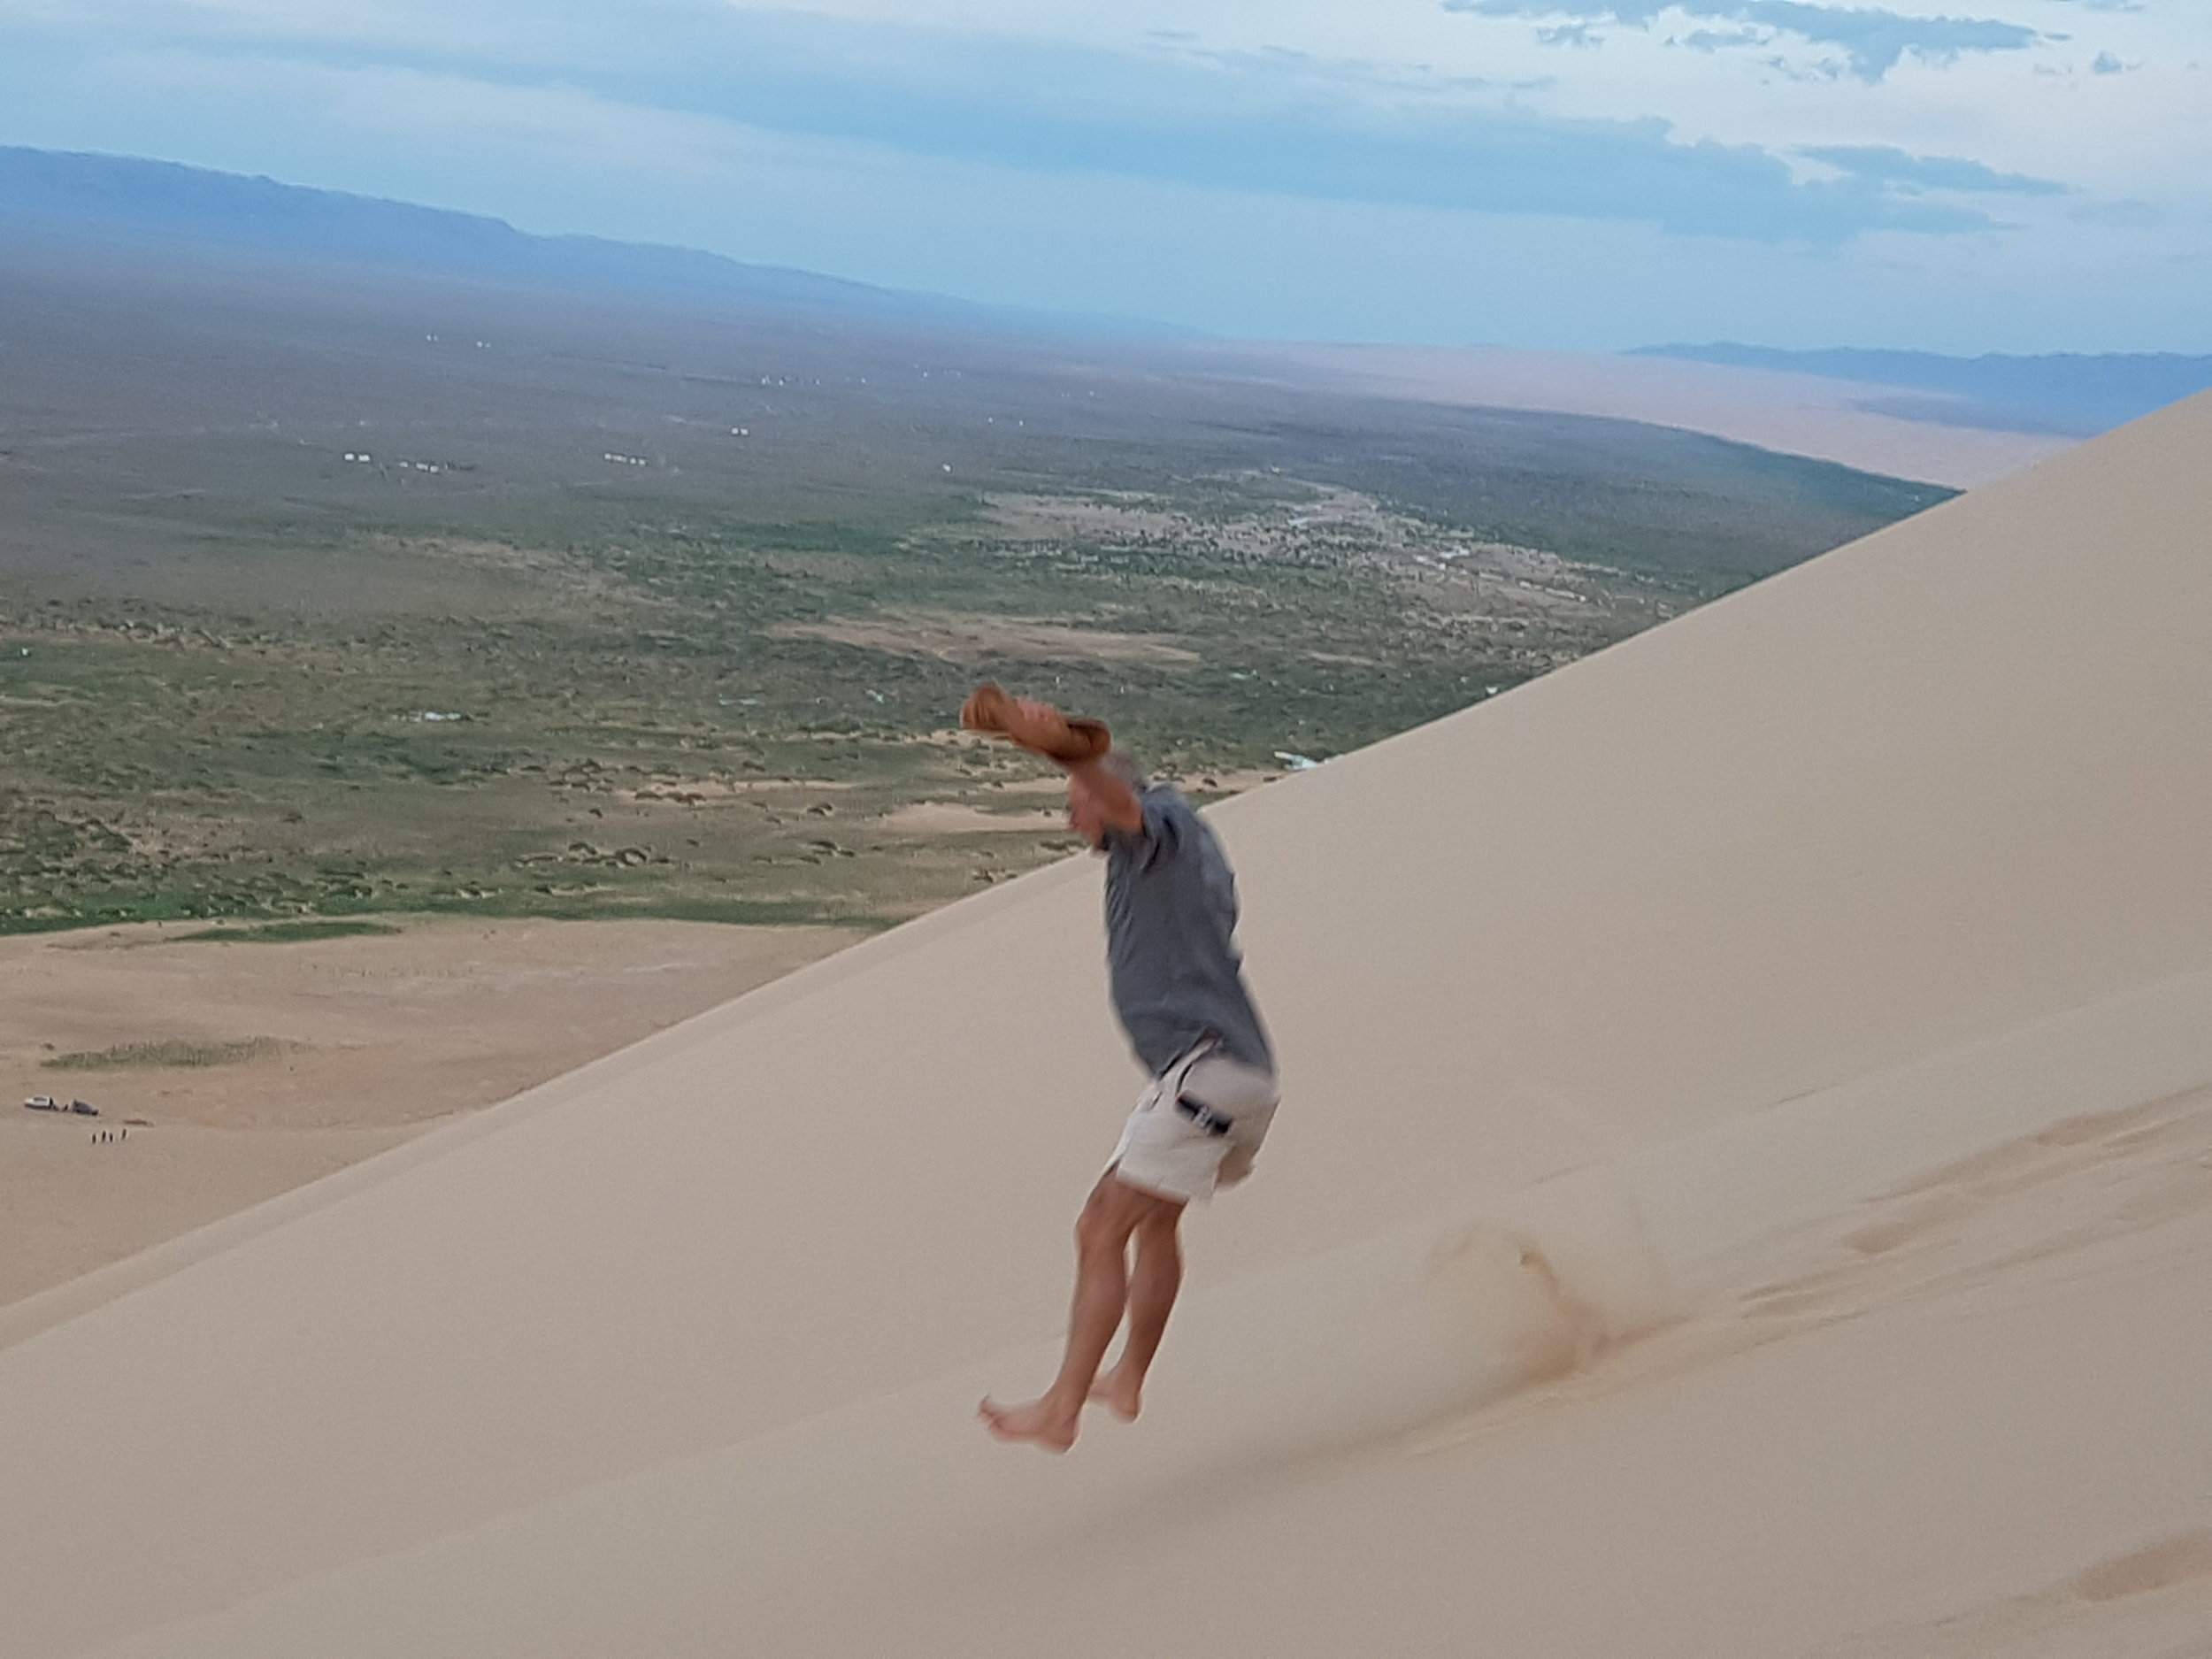 Going down the dune is easier than walking up